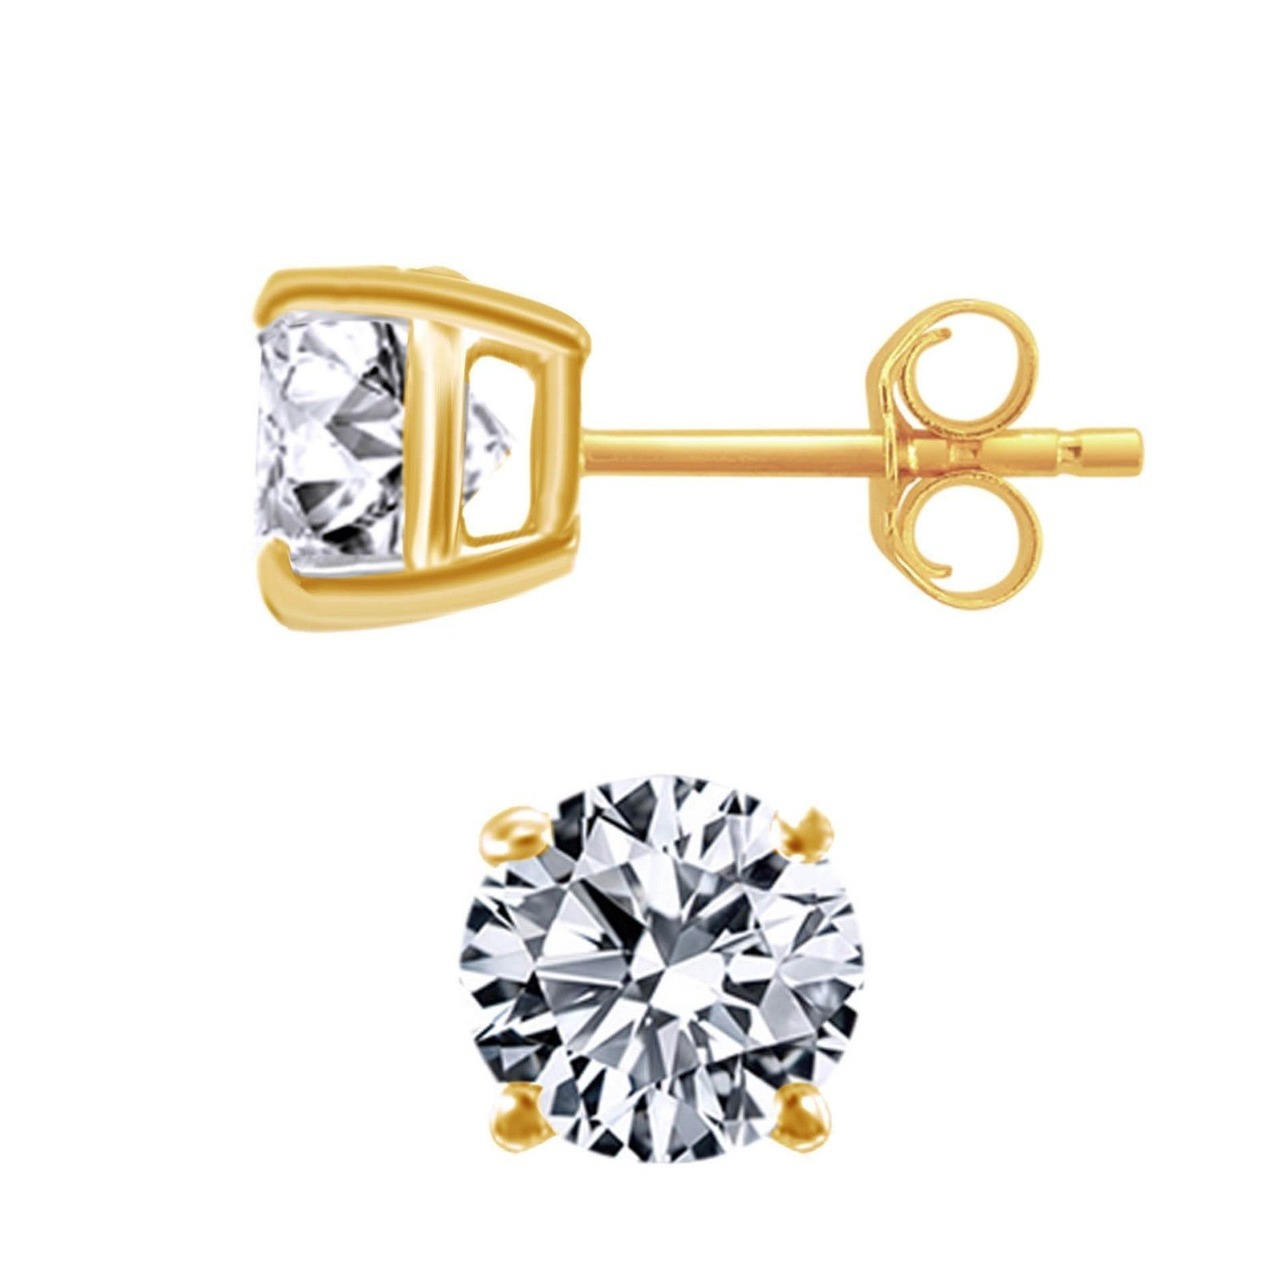 Round CZ Stud Earrings - 14k Yellow Gold Plated Sterling Silver 925 - 7mm pair of zircon gold plated stud earrings